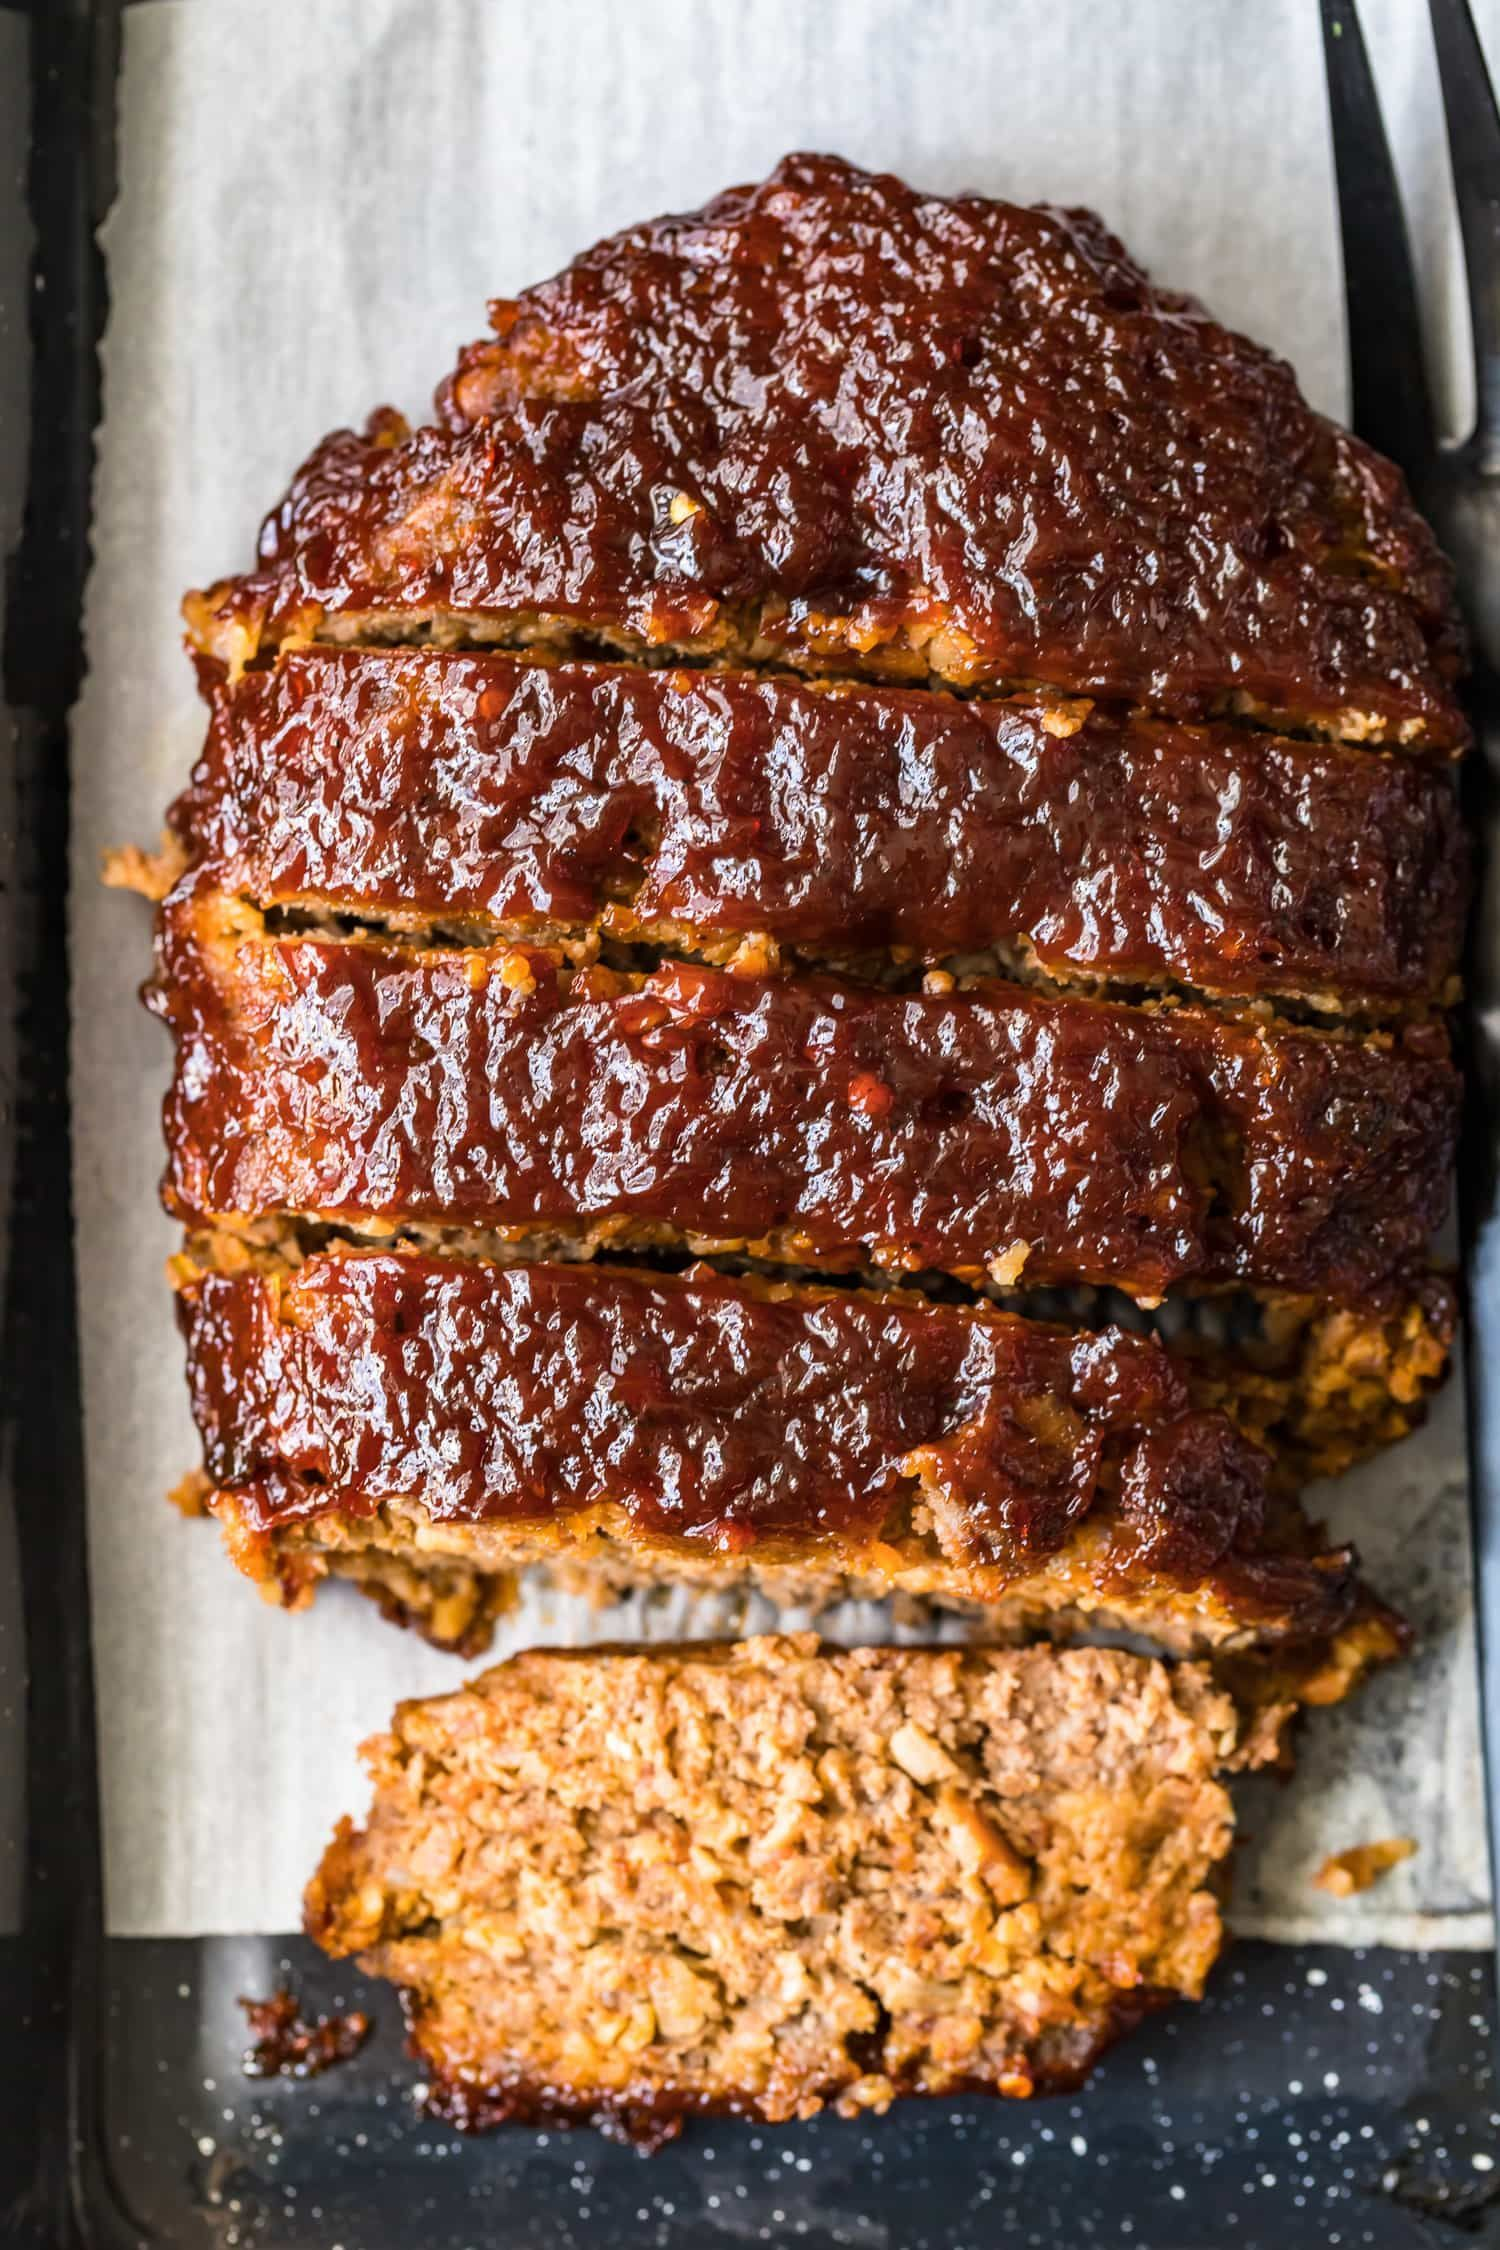 Bacon Infused Meatloaf - When it comes to comfort food, this bacon meatloaf recipe is a winner! Ri